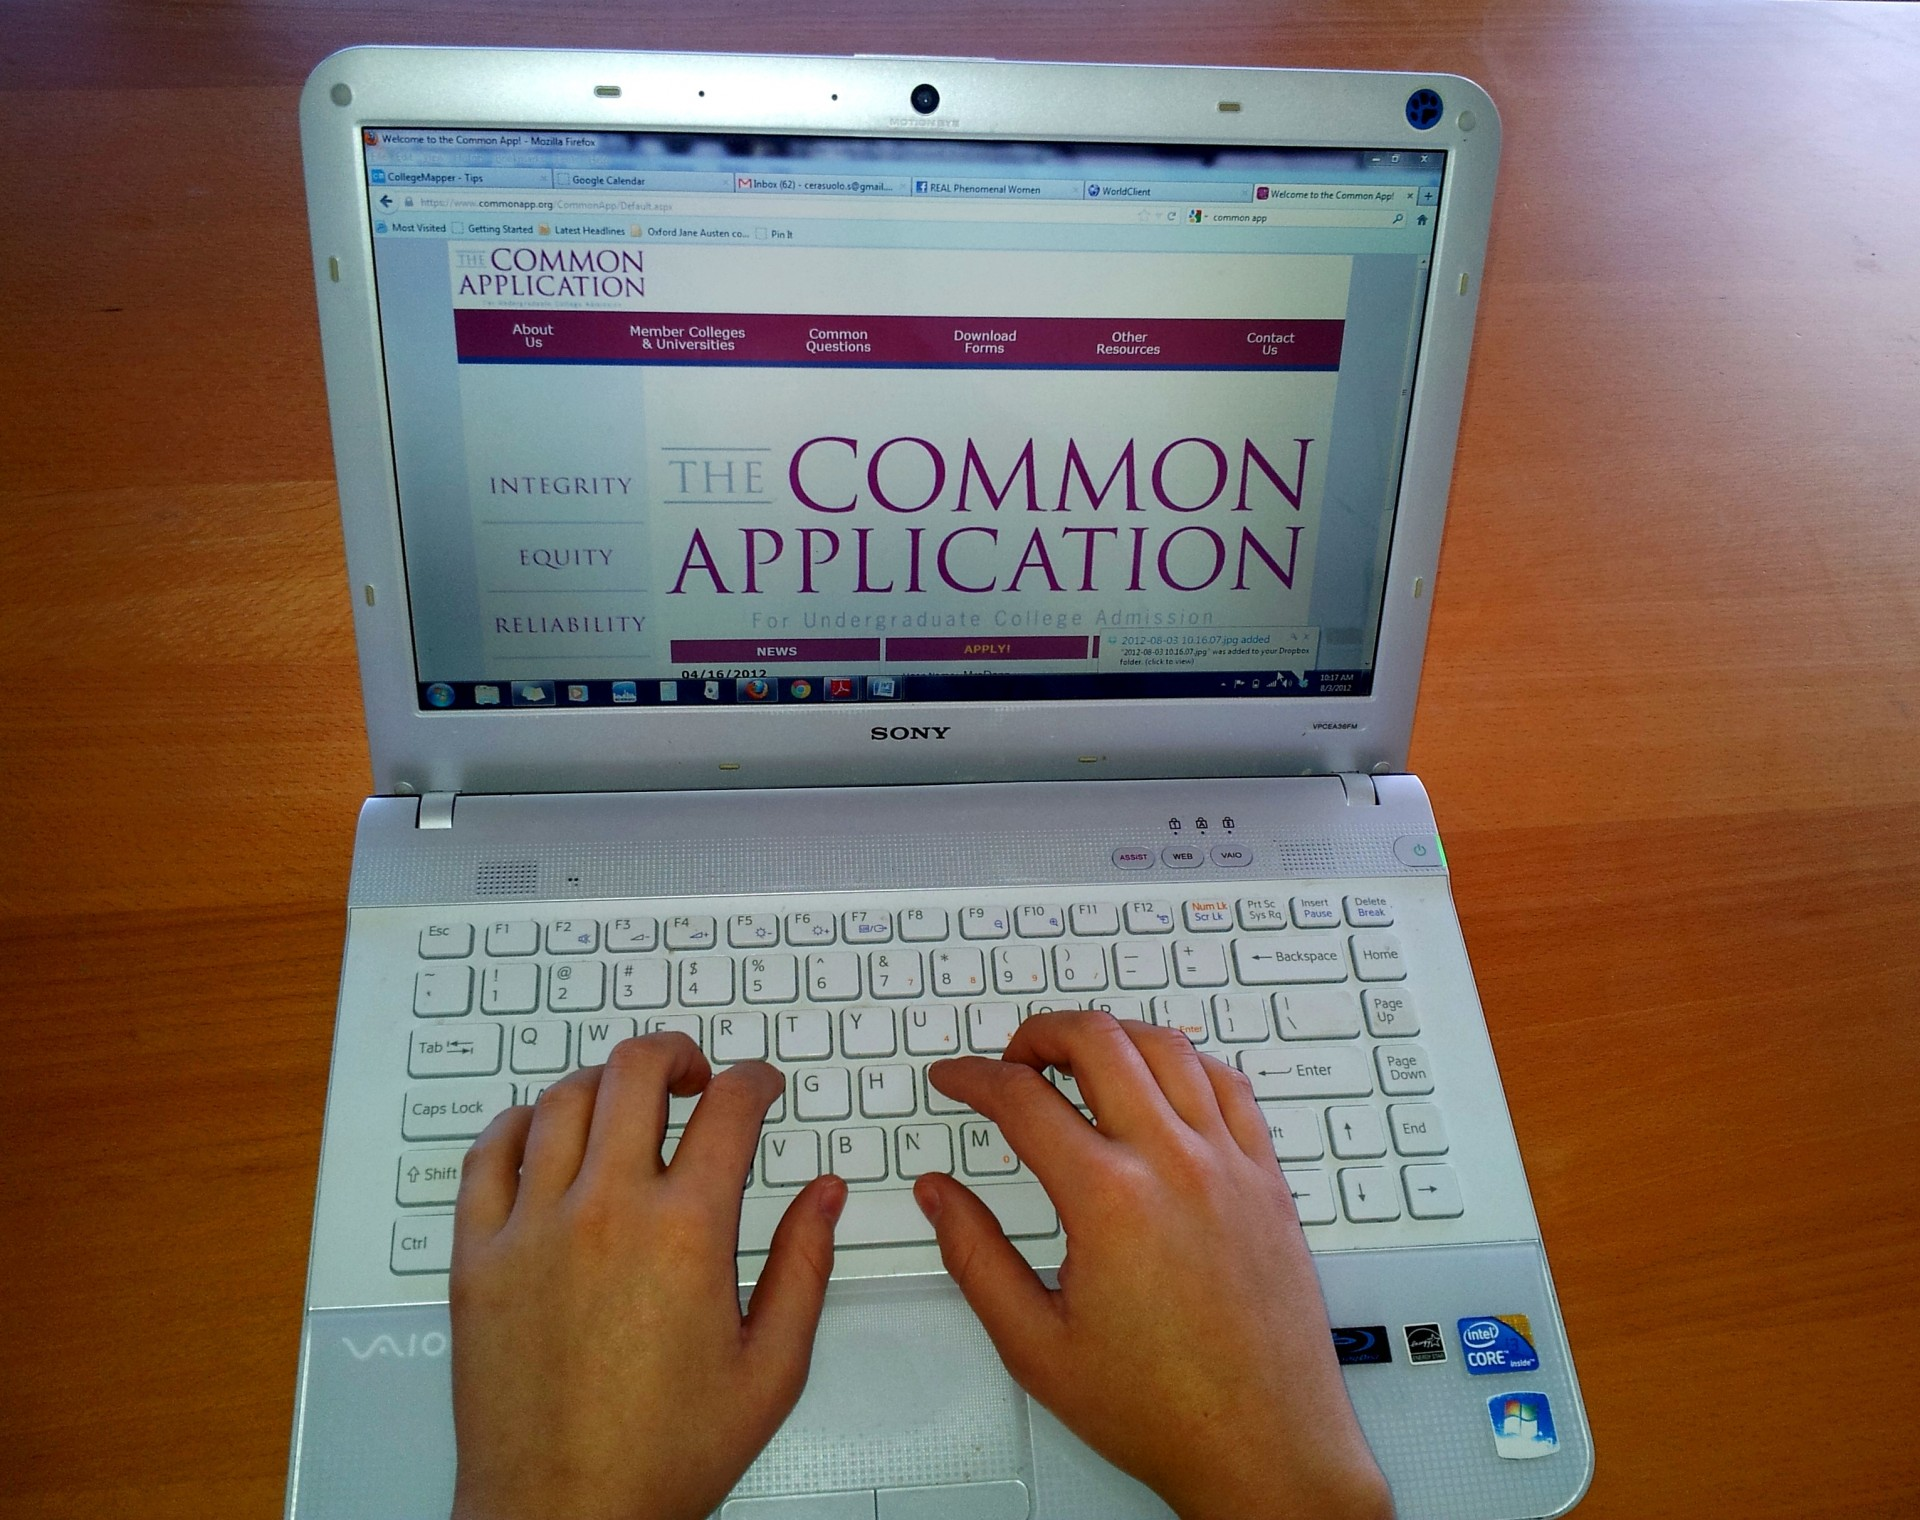 027 Essay Example Commonapp1 Best Common App Magnificent Essays 2018 Ivy League New York Times 1920